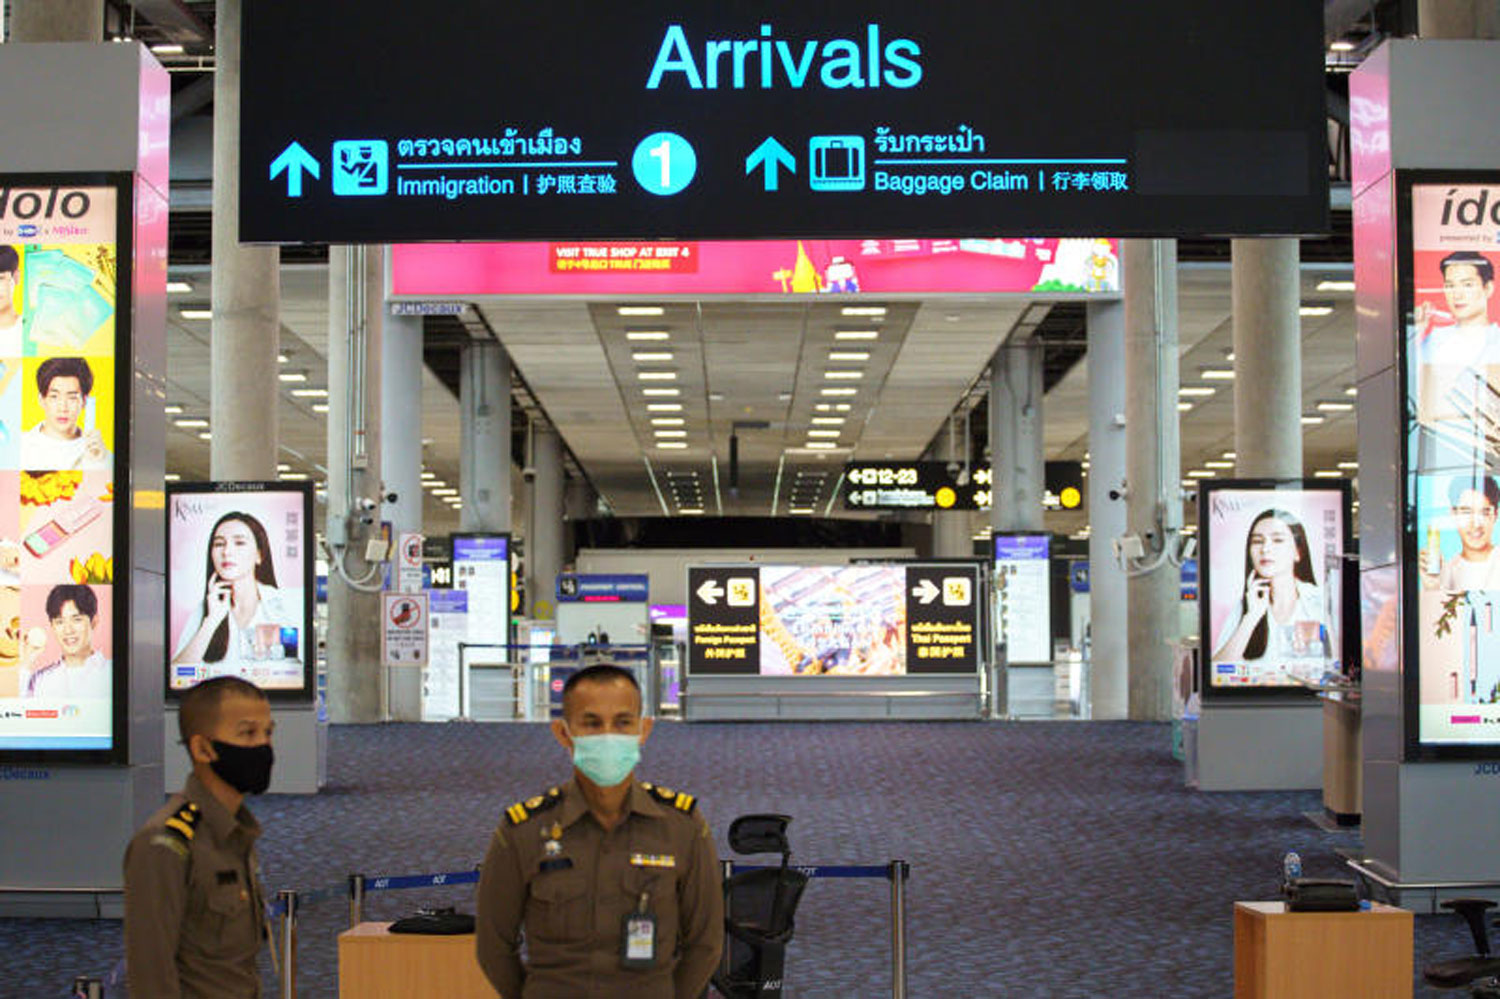 The cabinet hopes this empty arrivals hall at Bangkok's Suvarnabhumi airport will fill with wealthy foreigners attracted to live here long term. (Reuters)